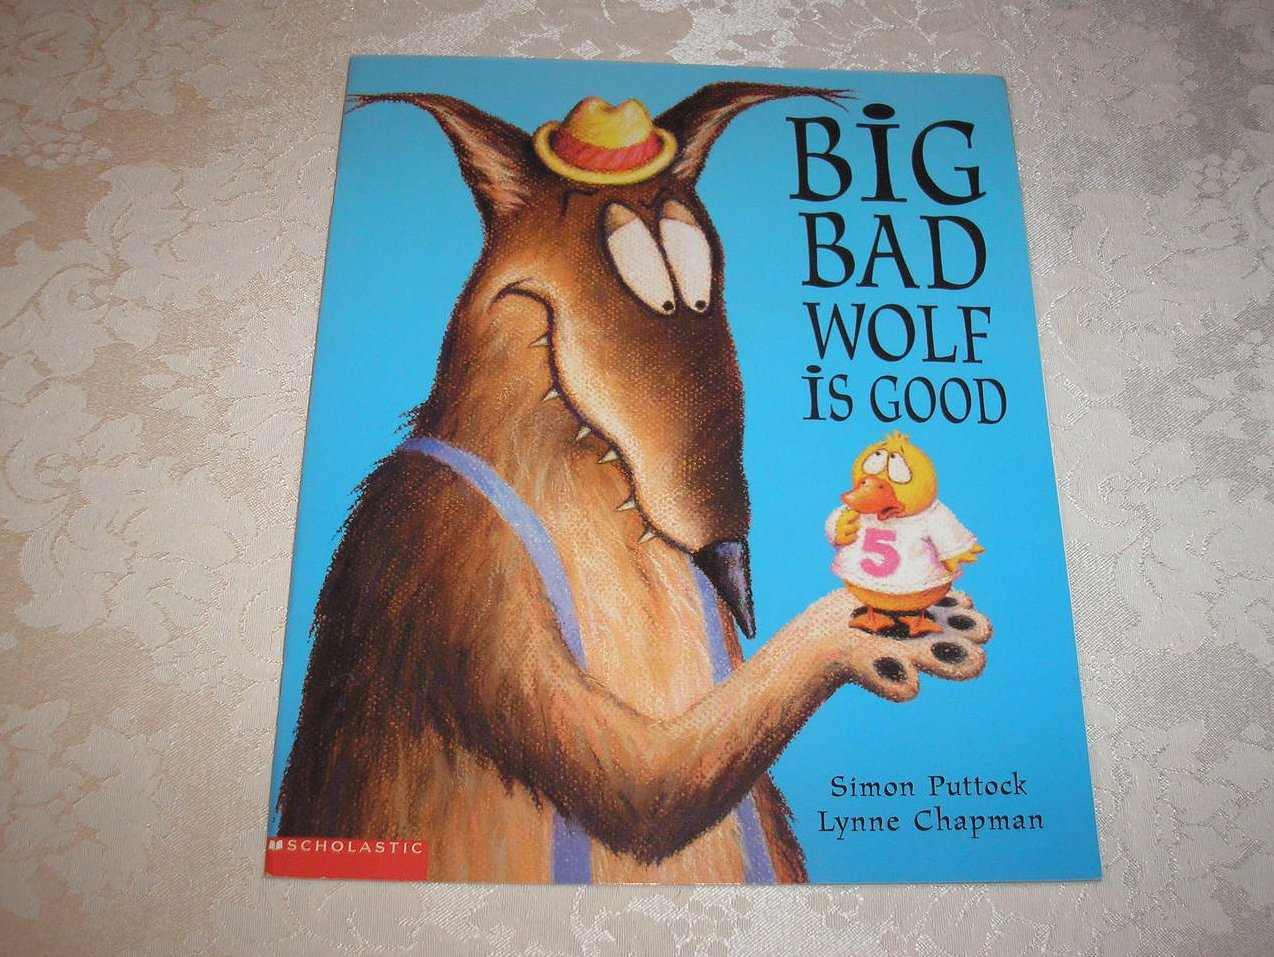 Big Bad Wolf Is Good Simon Puttock like new rare sc